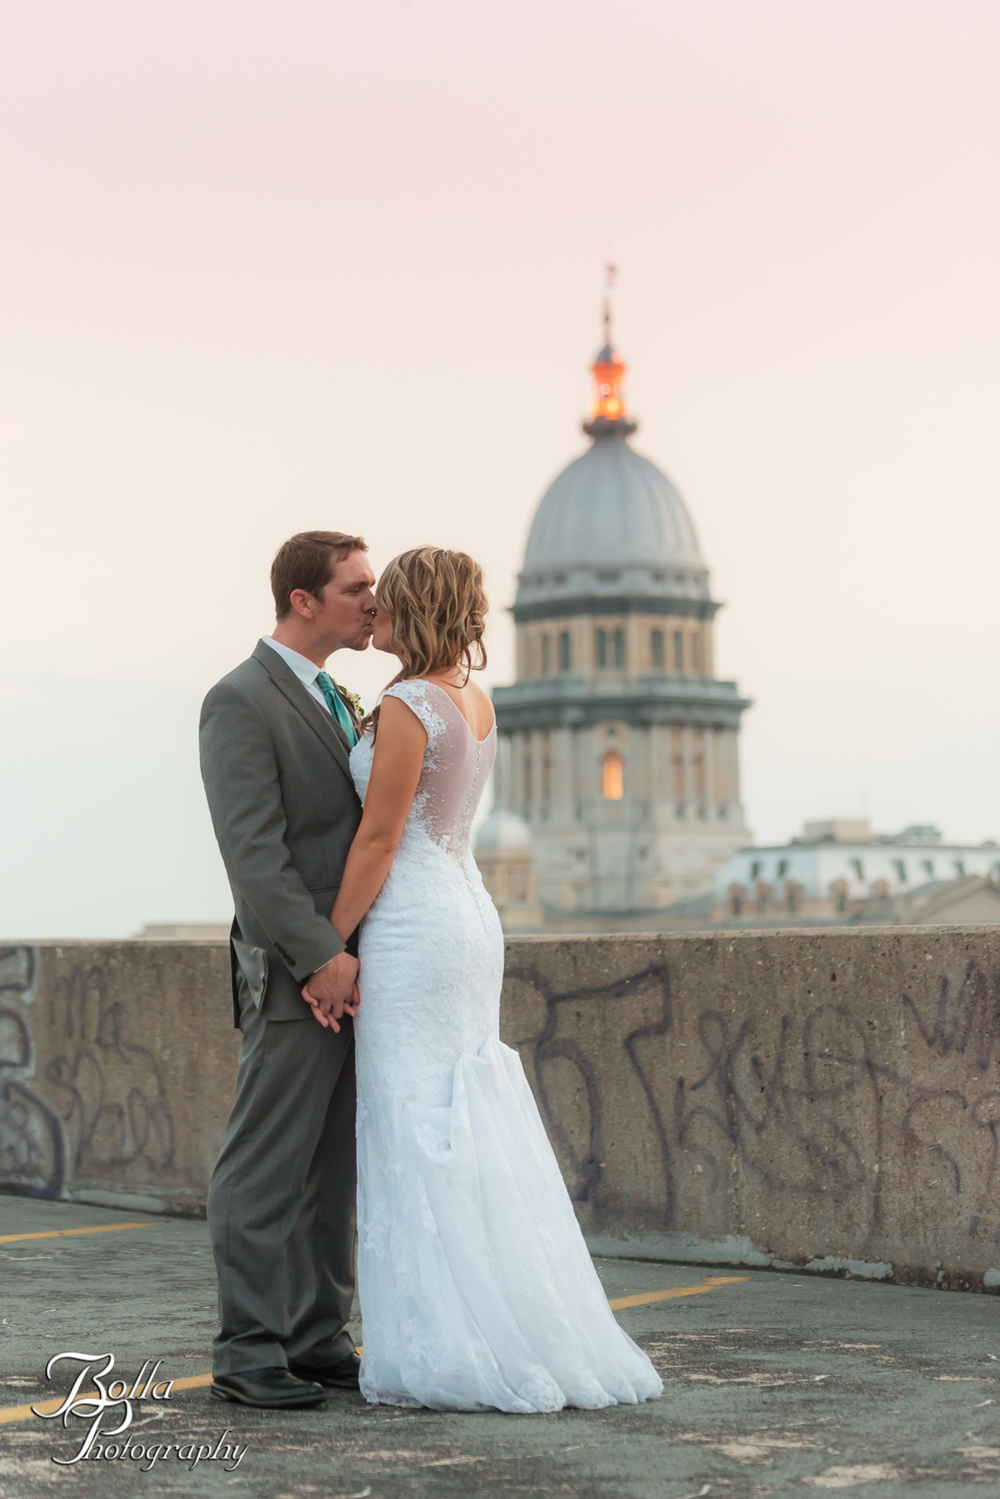 Wedding Dresses Springfield Il 77 Epic Bolla Photography St Louis